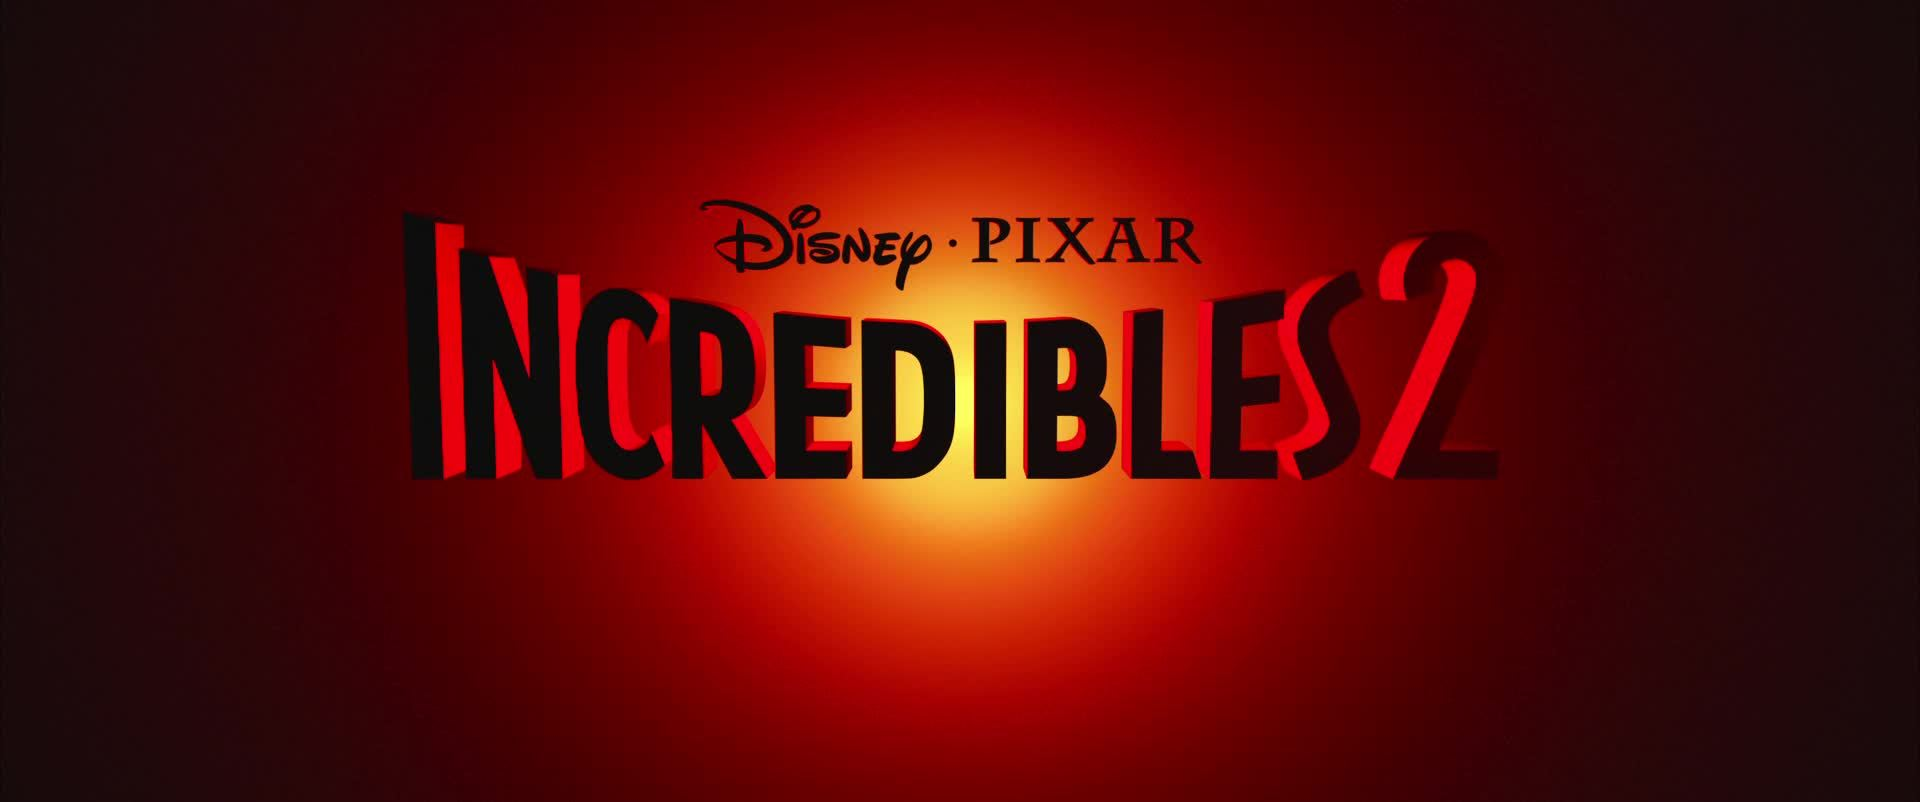 ãIncredibles 2ãã®ç»åæ¤ç´¢çµæ